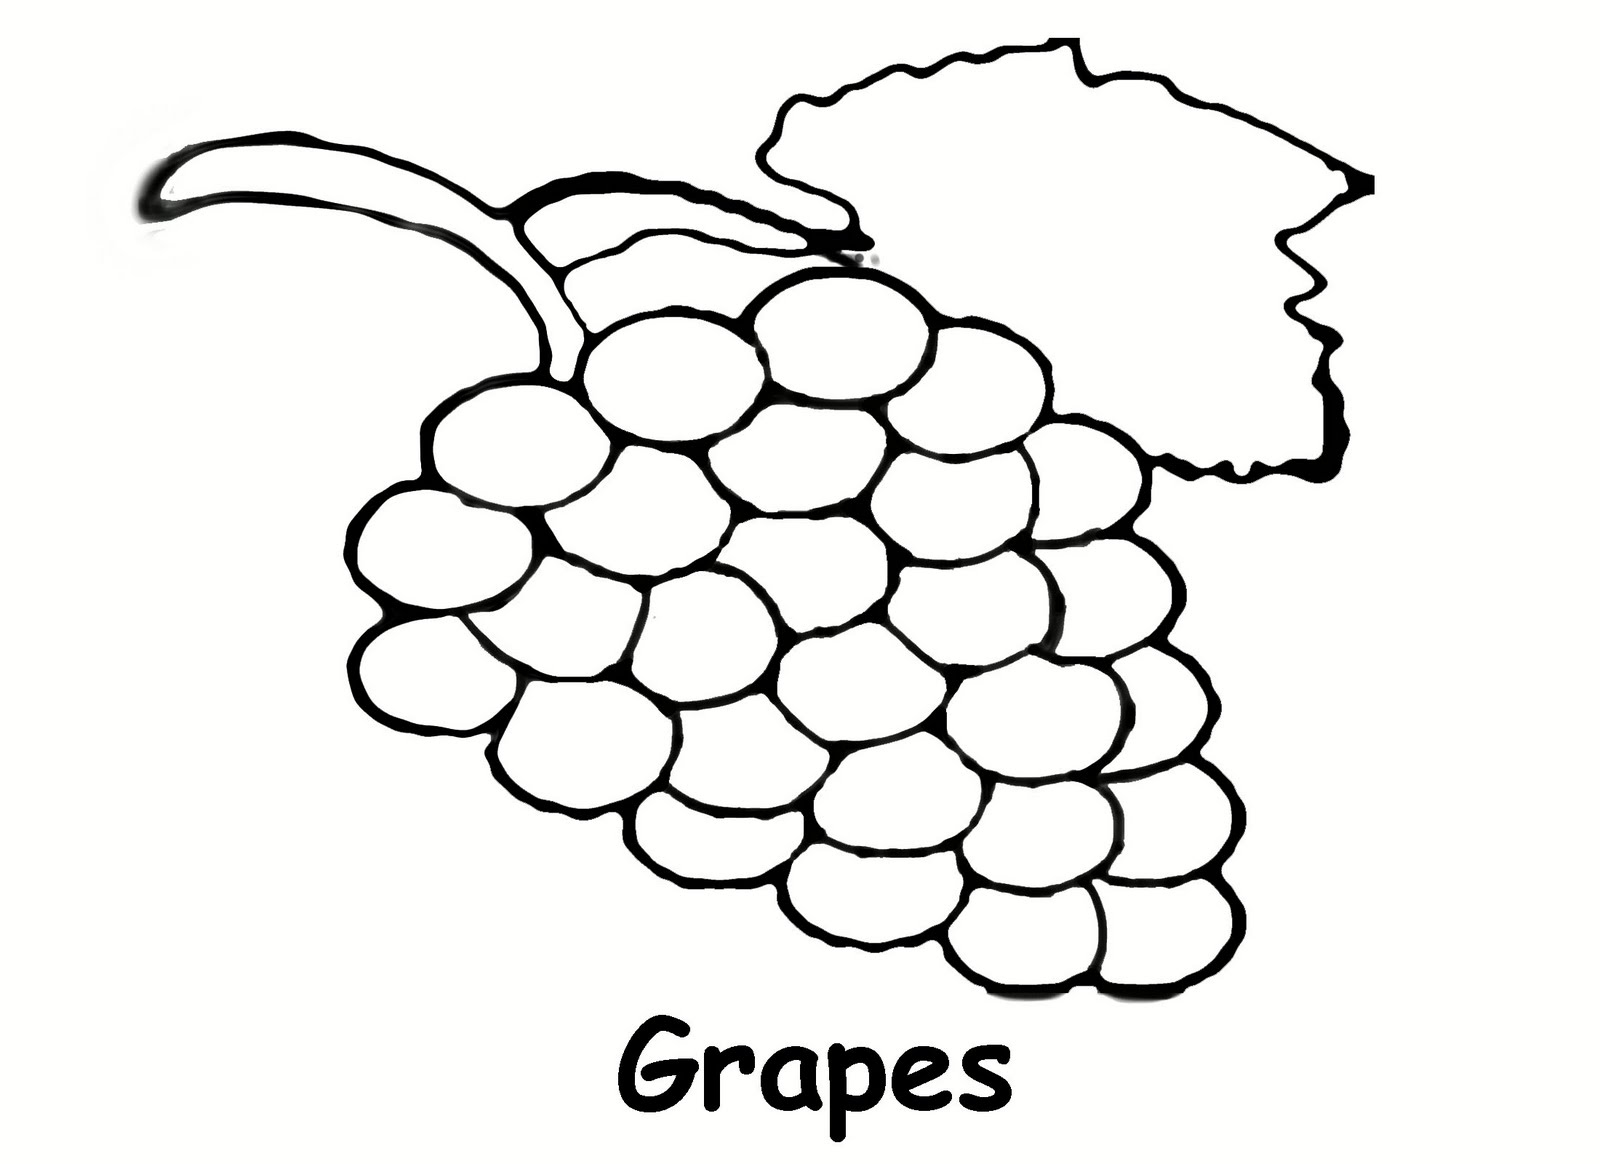 Grape clipart drawn Outline Clip Drawing Art on